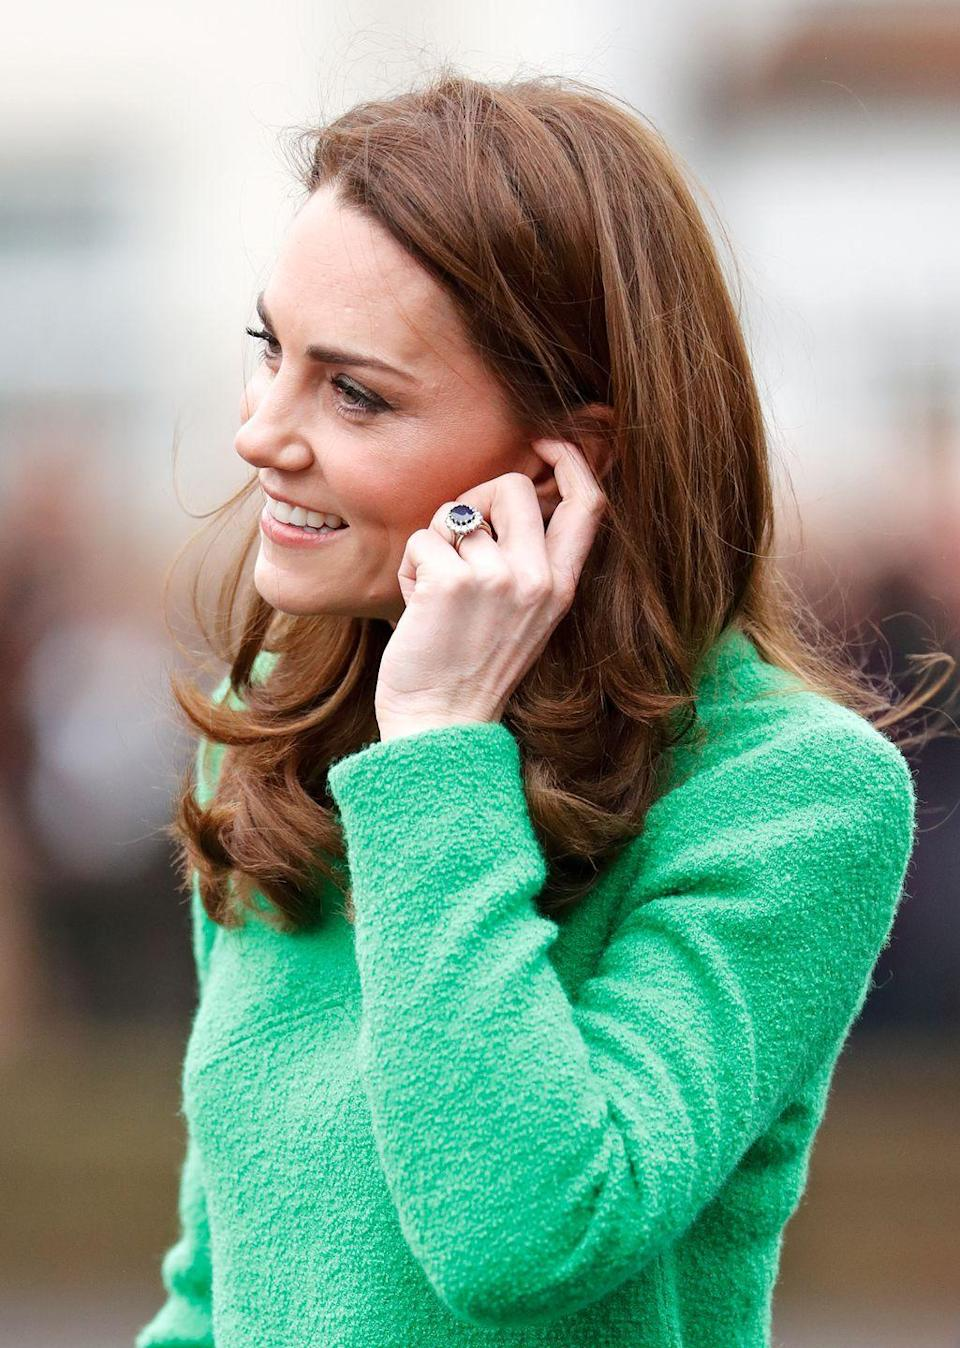 """<p>Kate's engagement ring, which originally belonged to Princess Diana, was controversial back in the day. According to the <em>Daily Mail</em>, the 12-carat oval Ceylon sapphire was available to commoners...and let's just say that didn't sit well with the royal family. More on that <a href=""""https://www.dailymail.co.uk/news/article-6070797/Why-Princess-Dianas-engagement-ring-caused-upset-Royals.html"""" rel=""""nofollow noopener"""" target=""""_blank"""" data-ylk=""""slk:here"""" class=""""link rapid-noclick-resp"""">here</a>. </p>"""